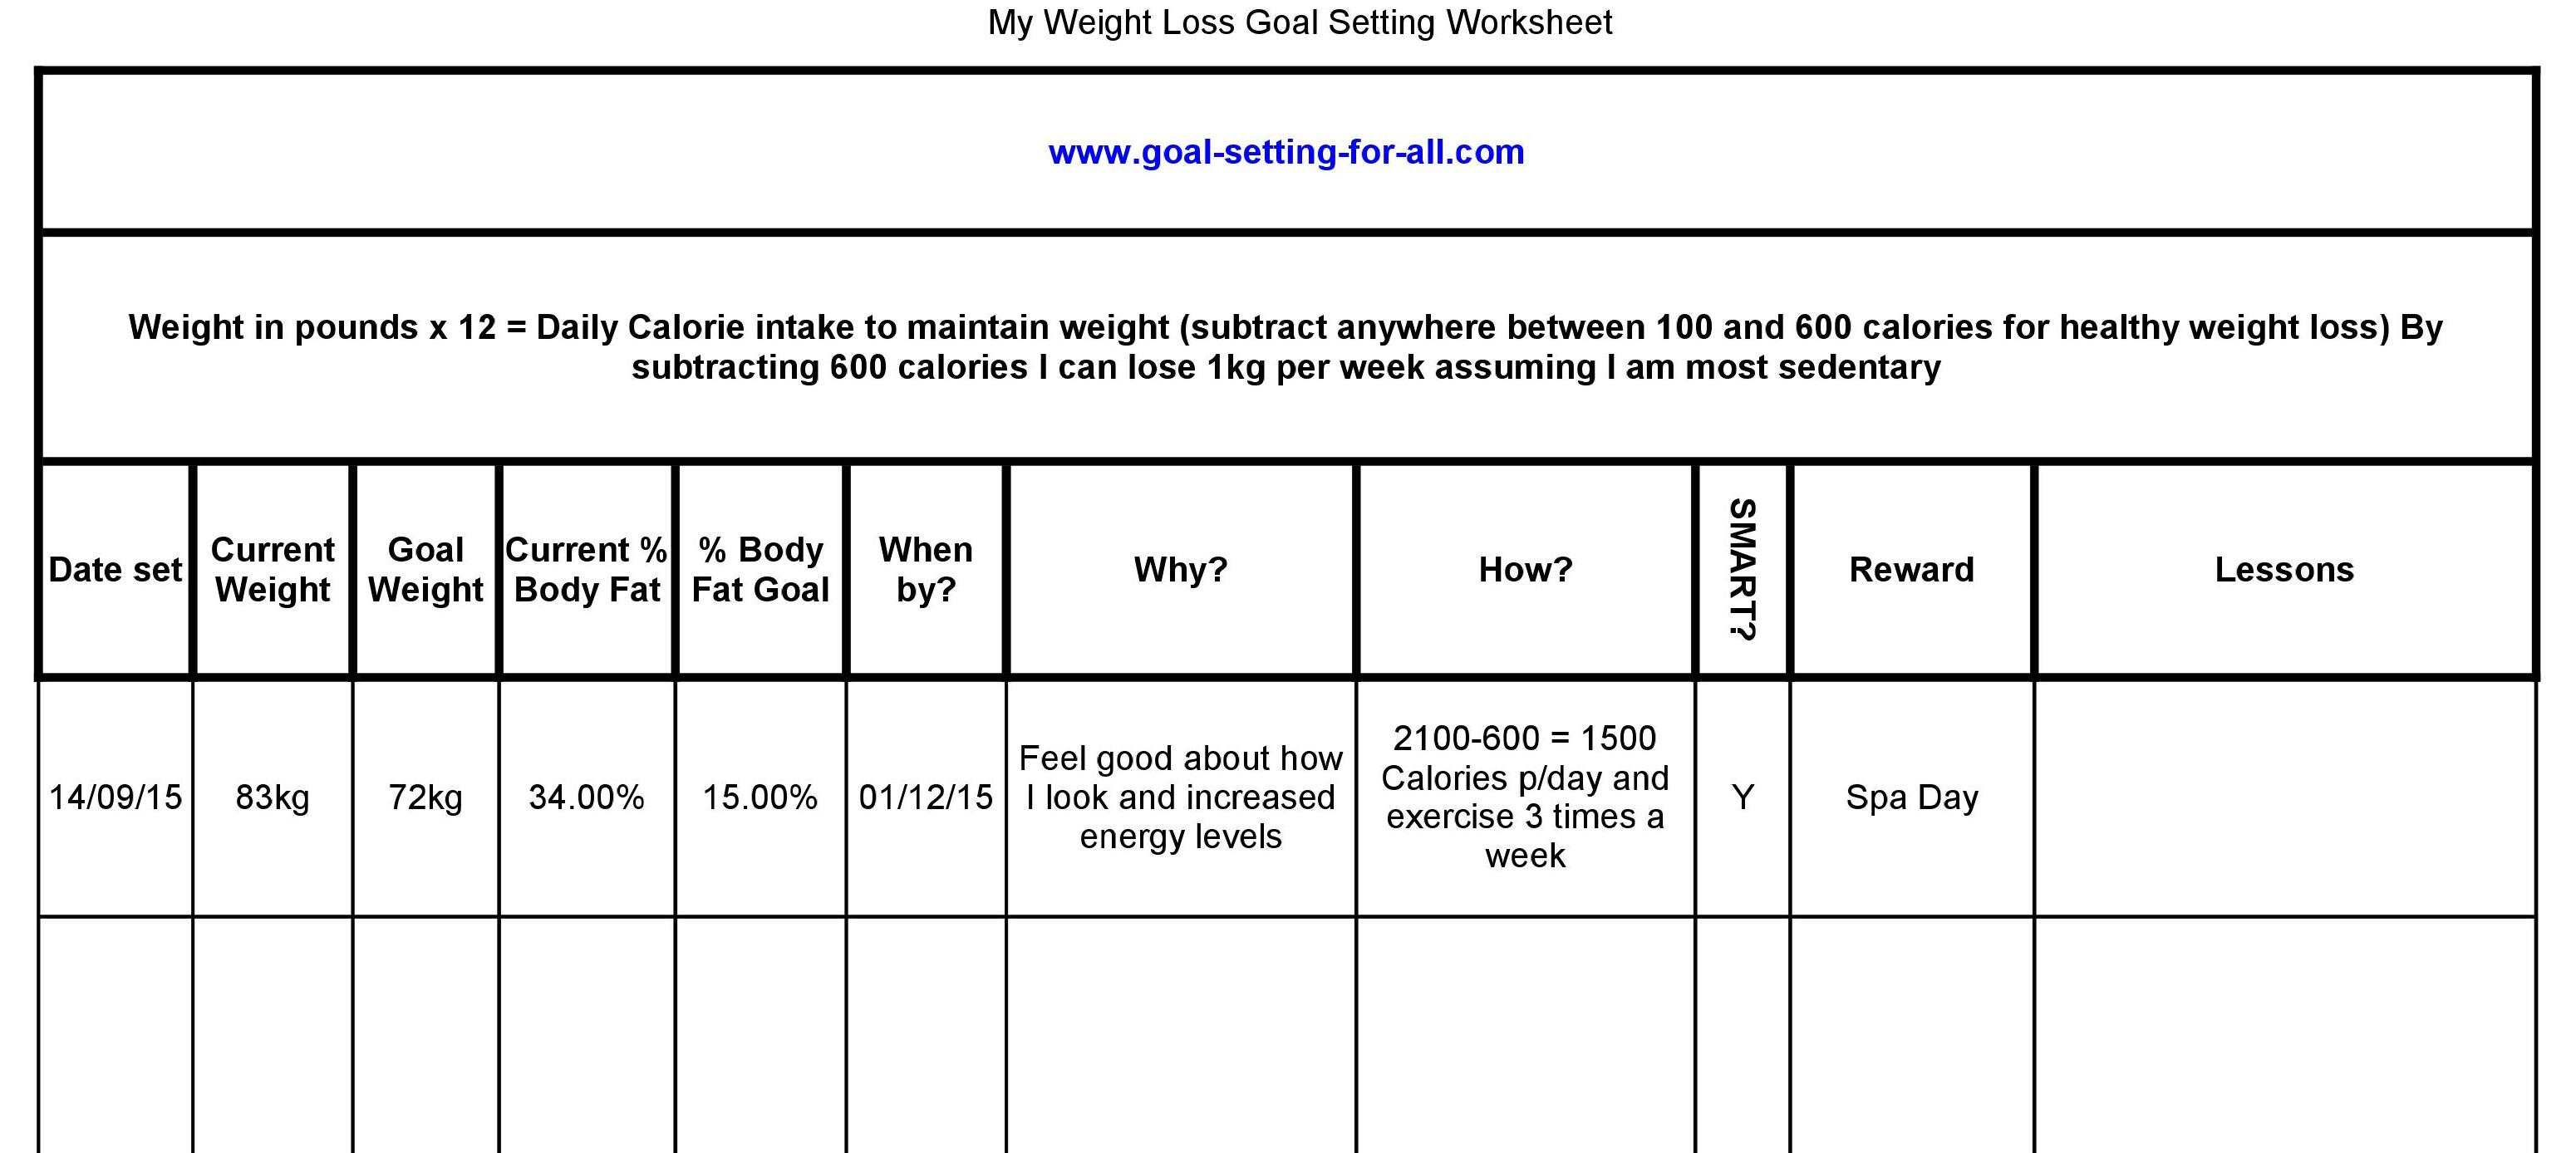 Worksheets Smart Goal Setting Worksheets weight loss goal setting worksheet